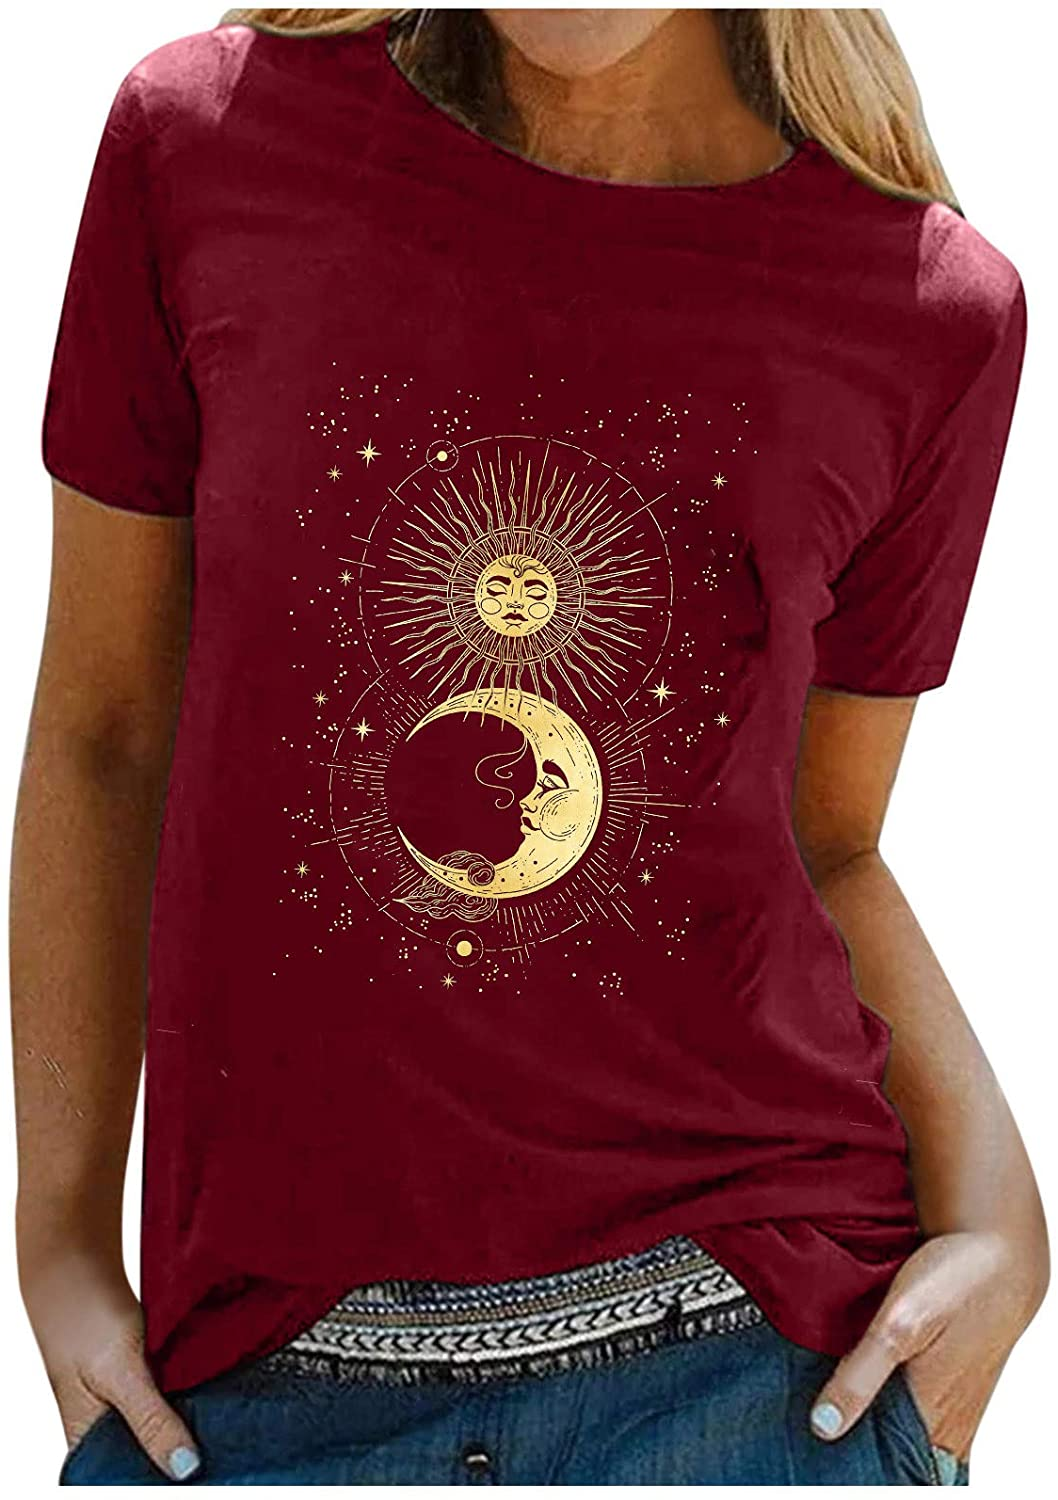 Graphic Tshirts for Women Vintage Sun and Moon Star Print Blouse O-Neck Short Sleeve Tops Comfy Light Tunics